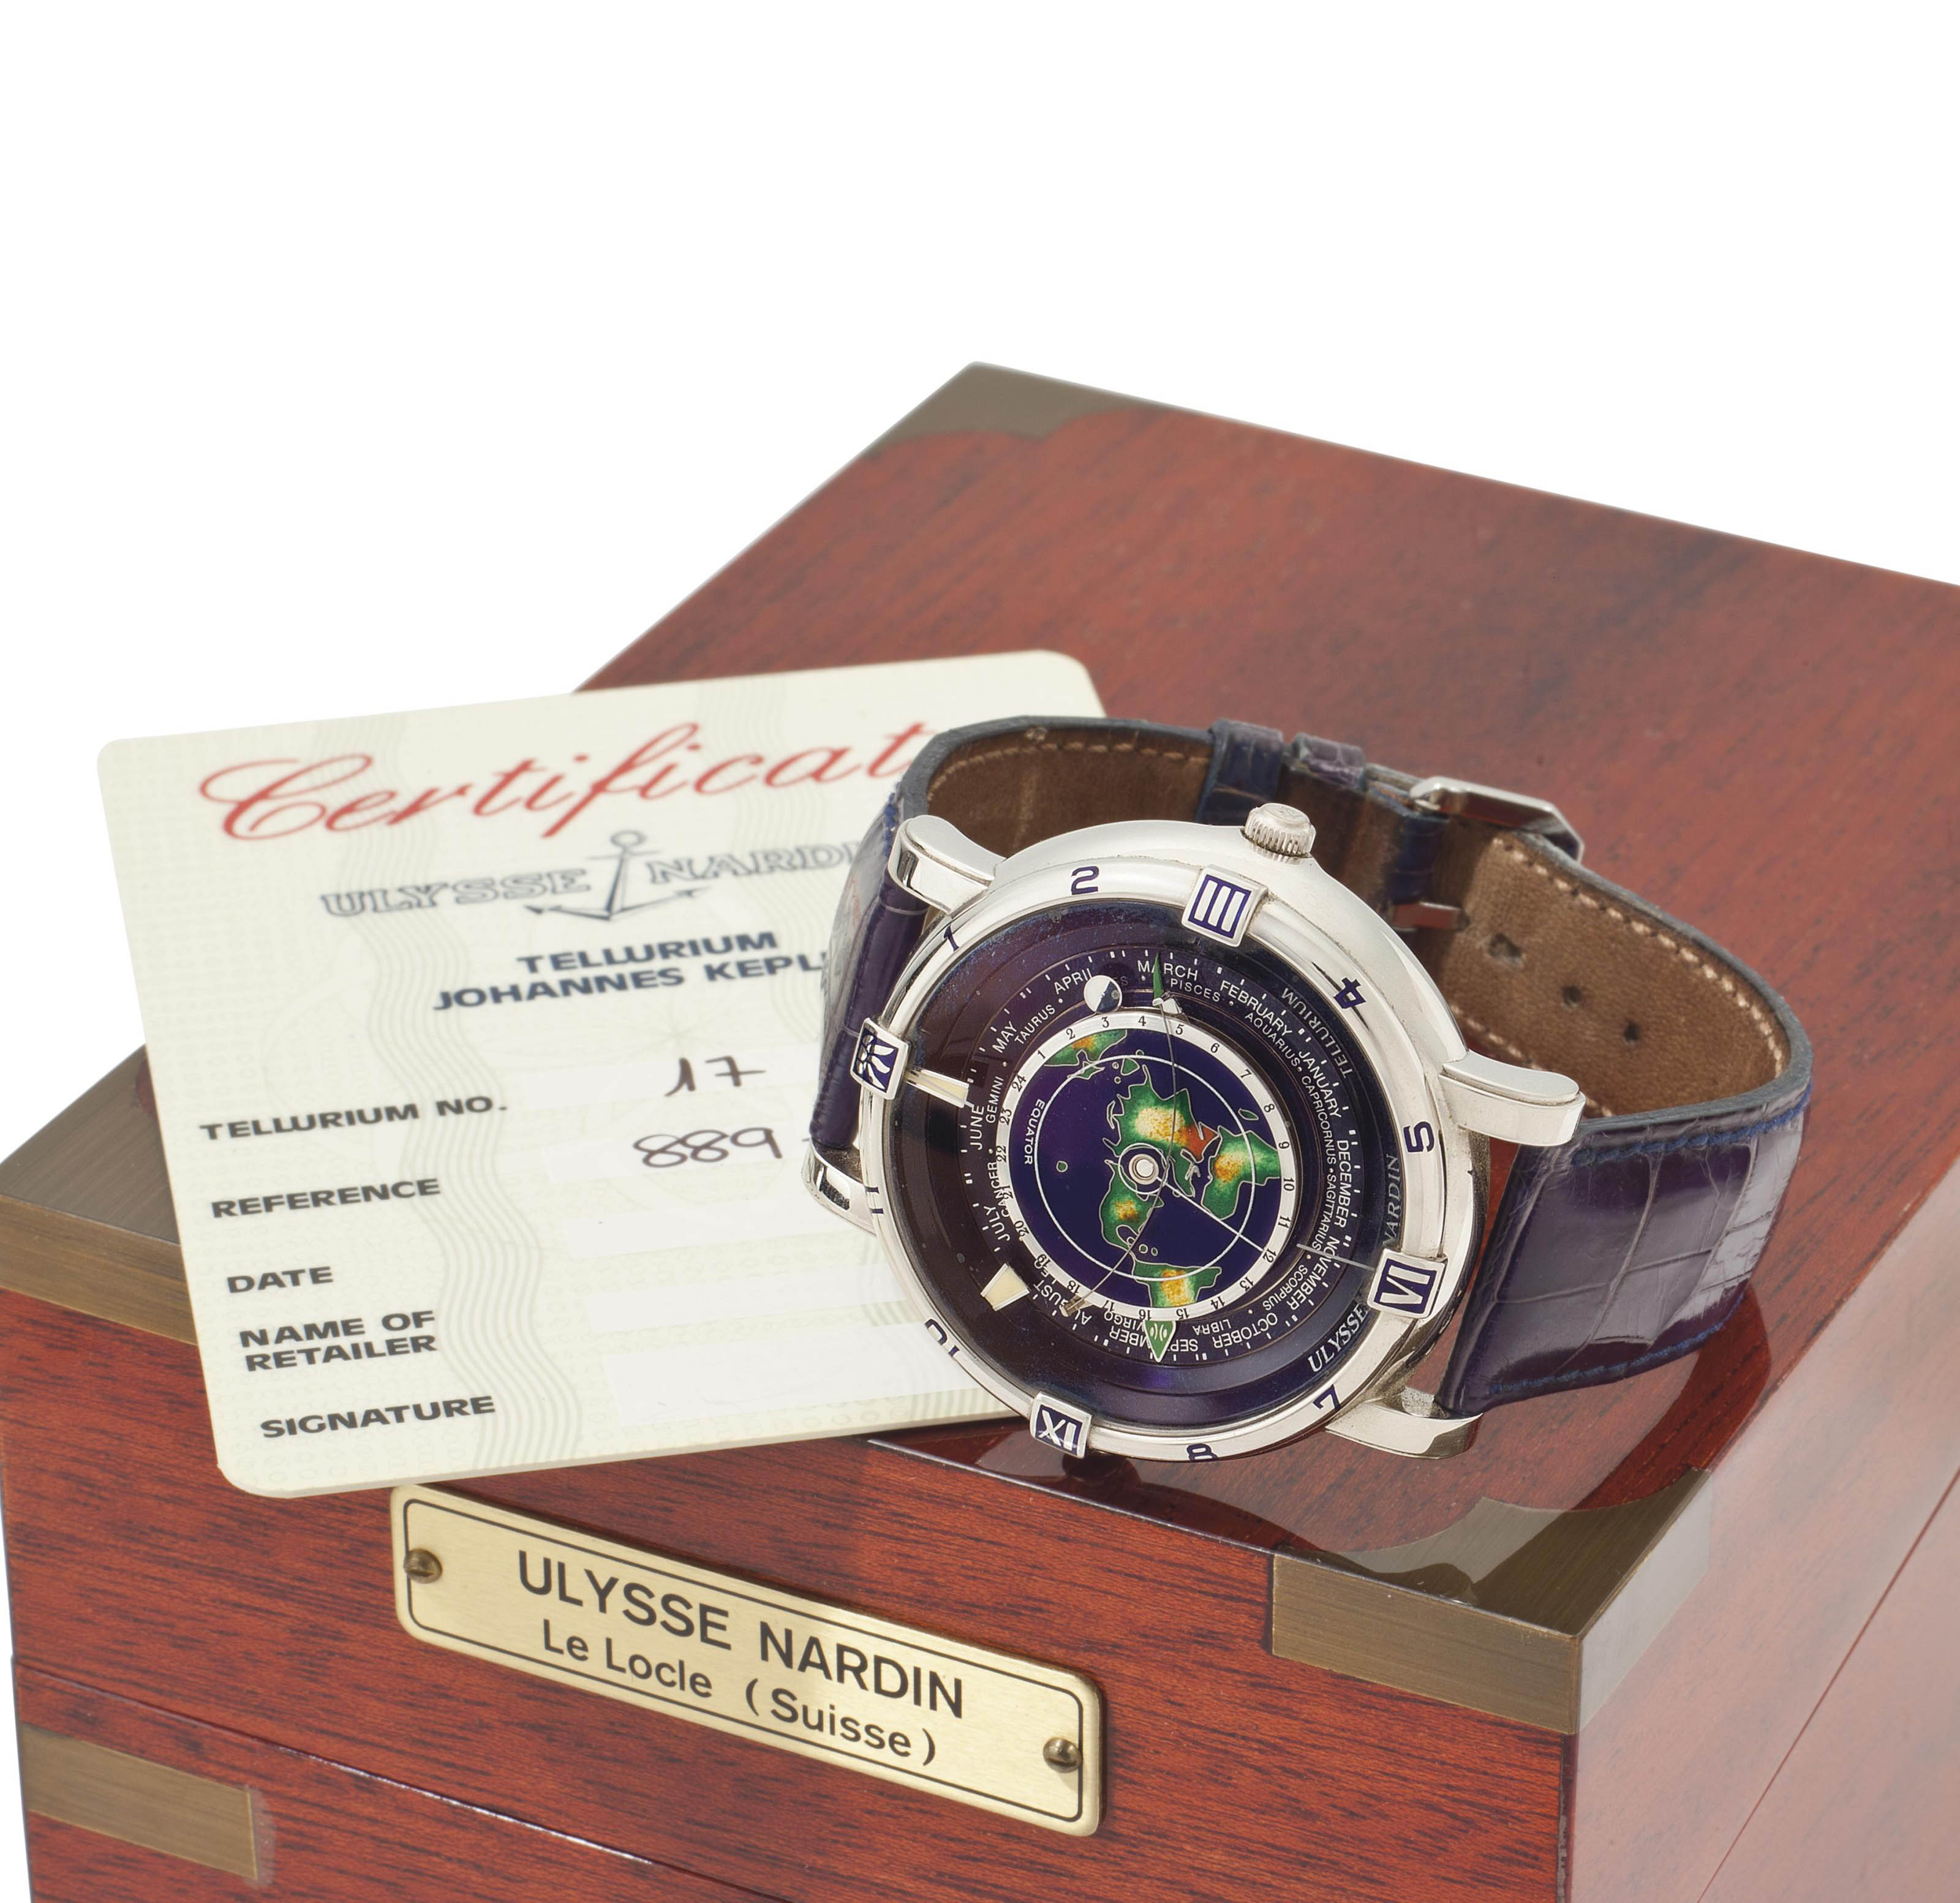 Ulysse Nardin.  A Fine and Rare Limited Edition Platinum Automatic Dual Time Astronomical Wristwatch